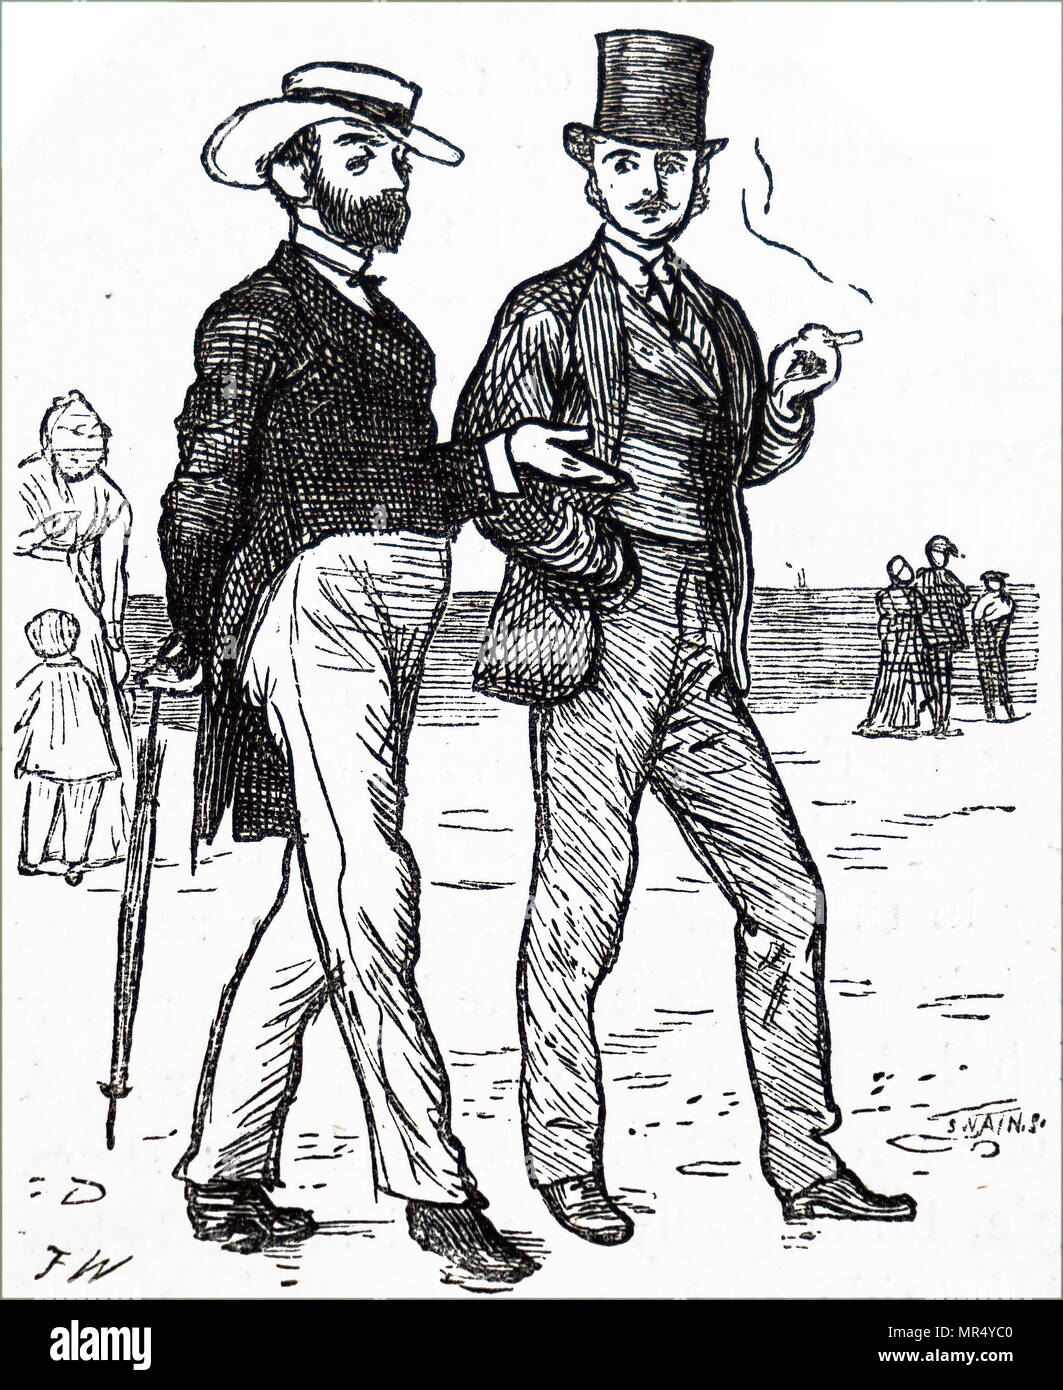 Illustration depicting an Englishman and Frenchman at a seaside resort in Normandy. Dated 19th century - Stock Image